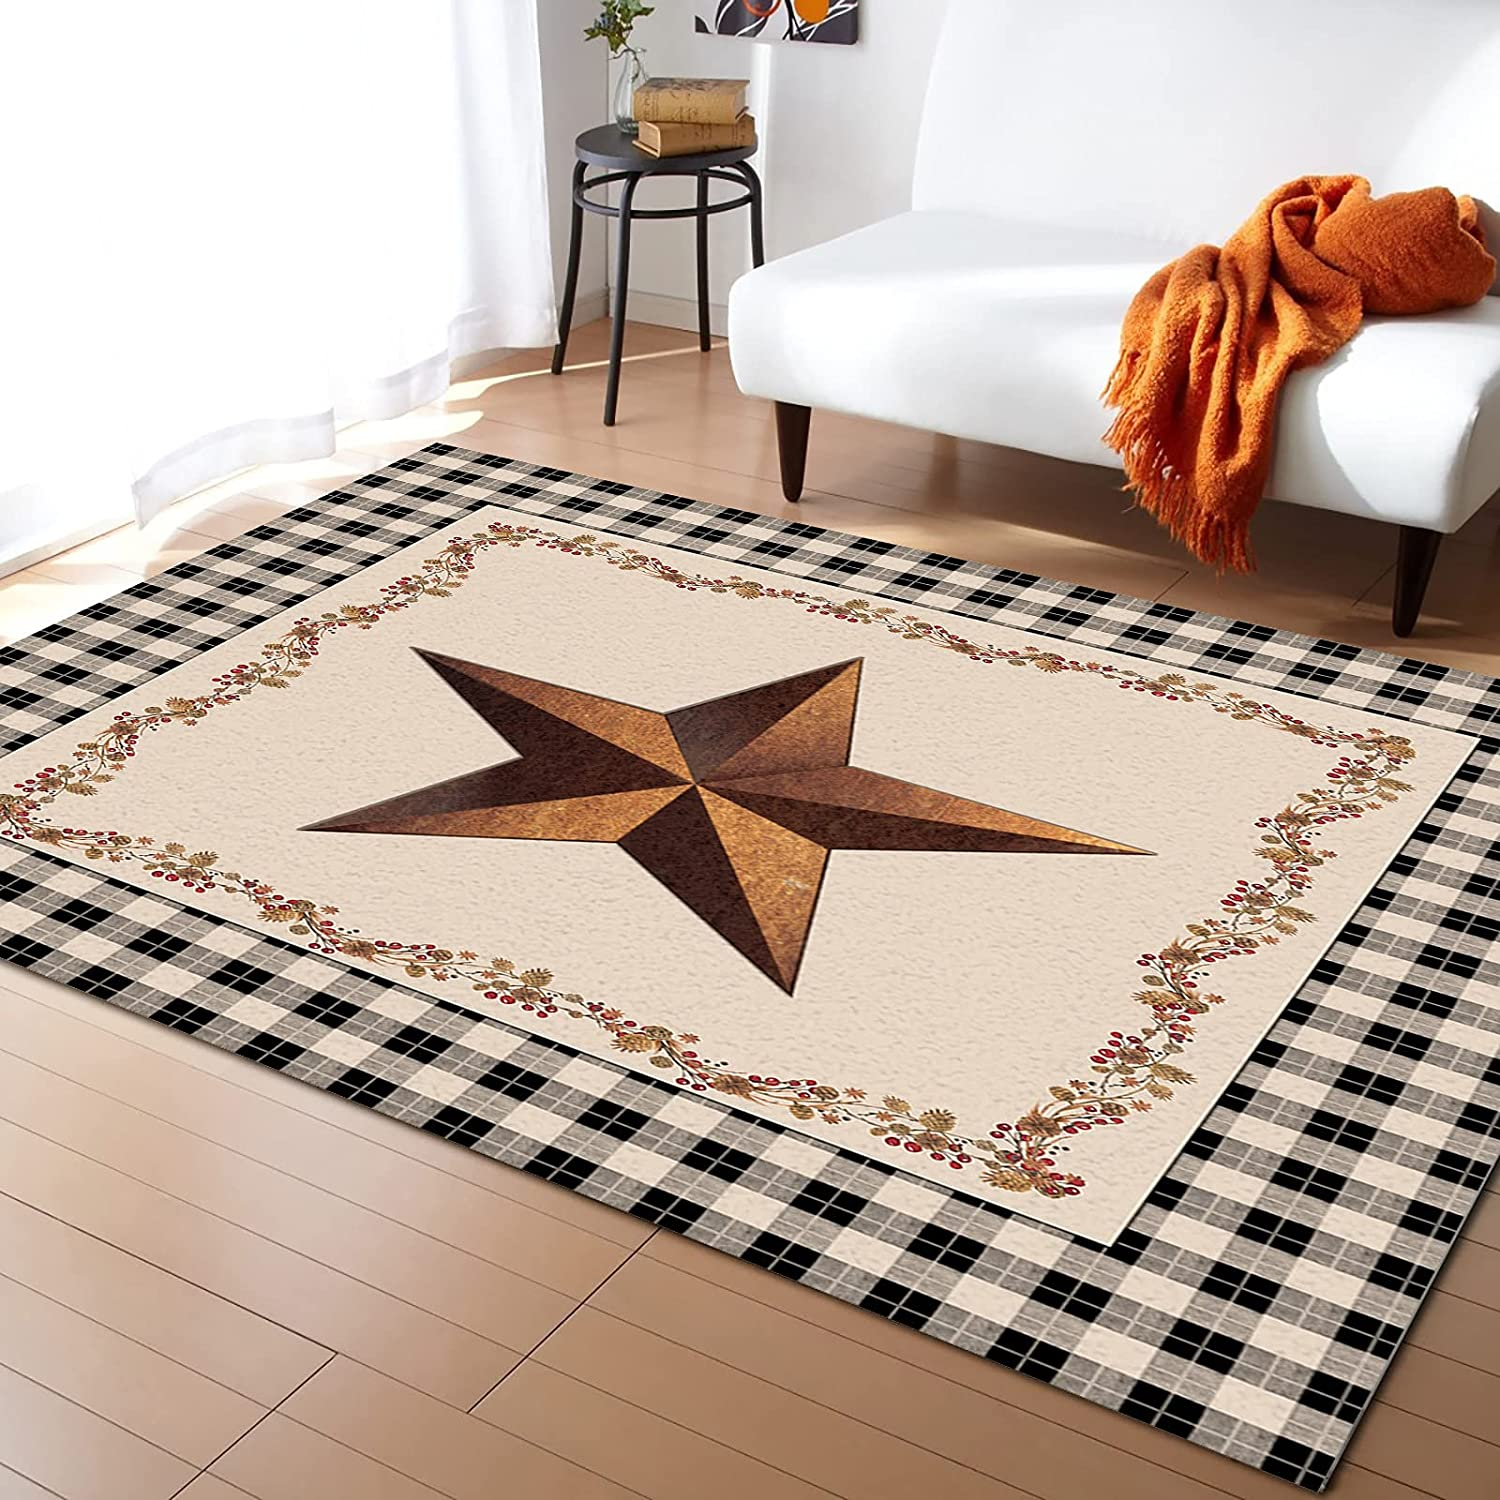 IDOWMAT Soft Area Rug Non-Slip Bedroom Decor Home Sale Floor for Indianapolis Mall